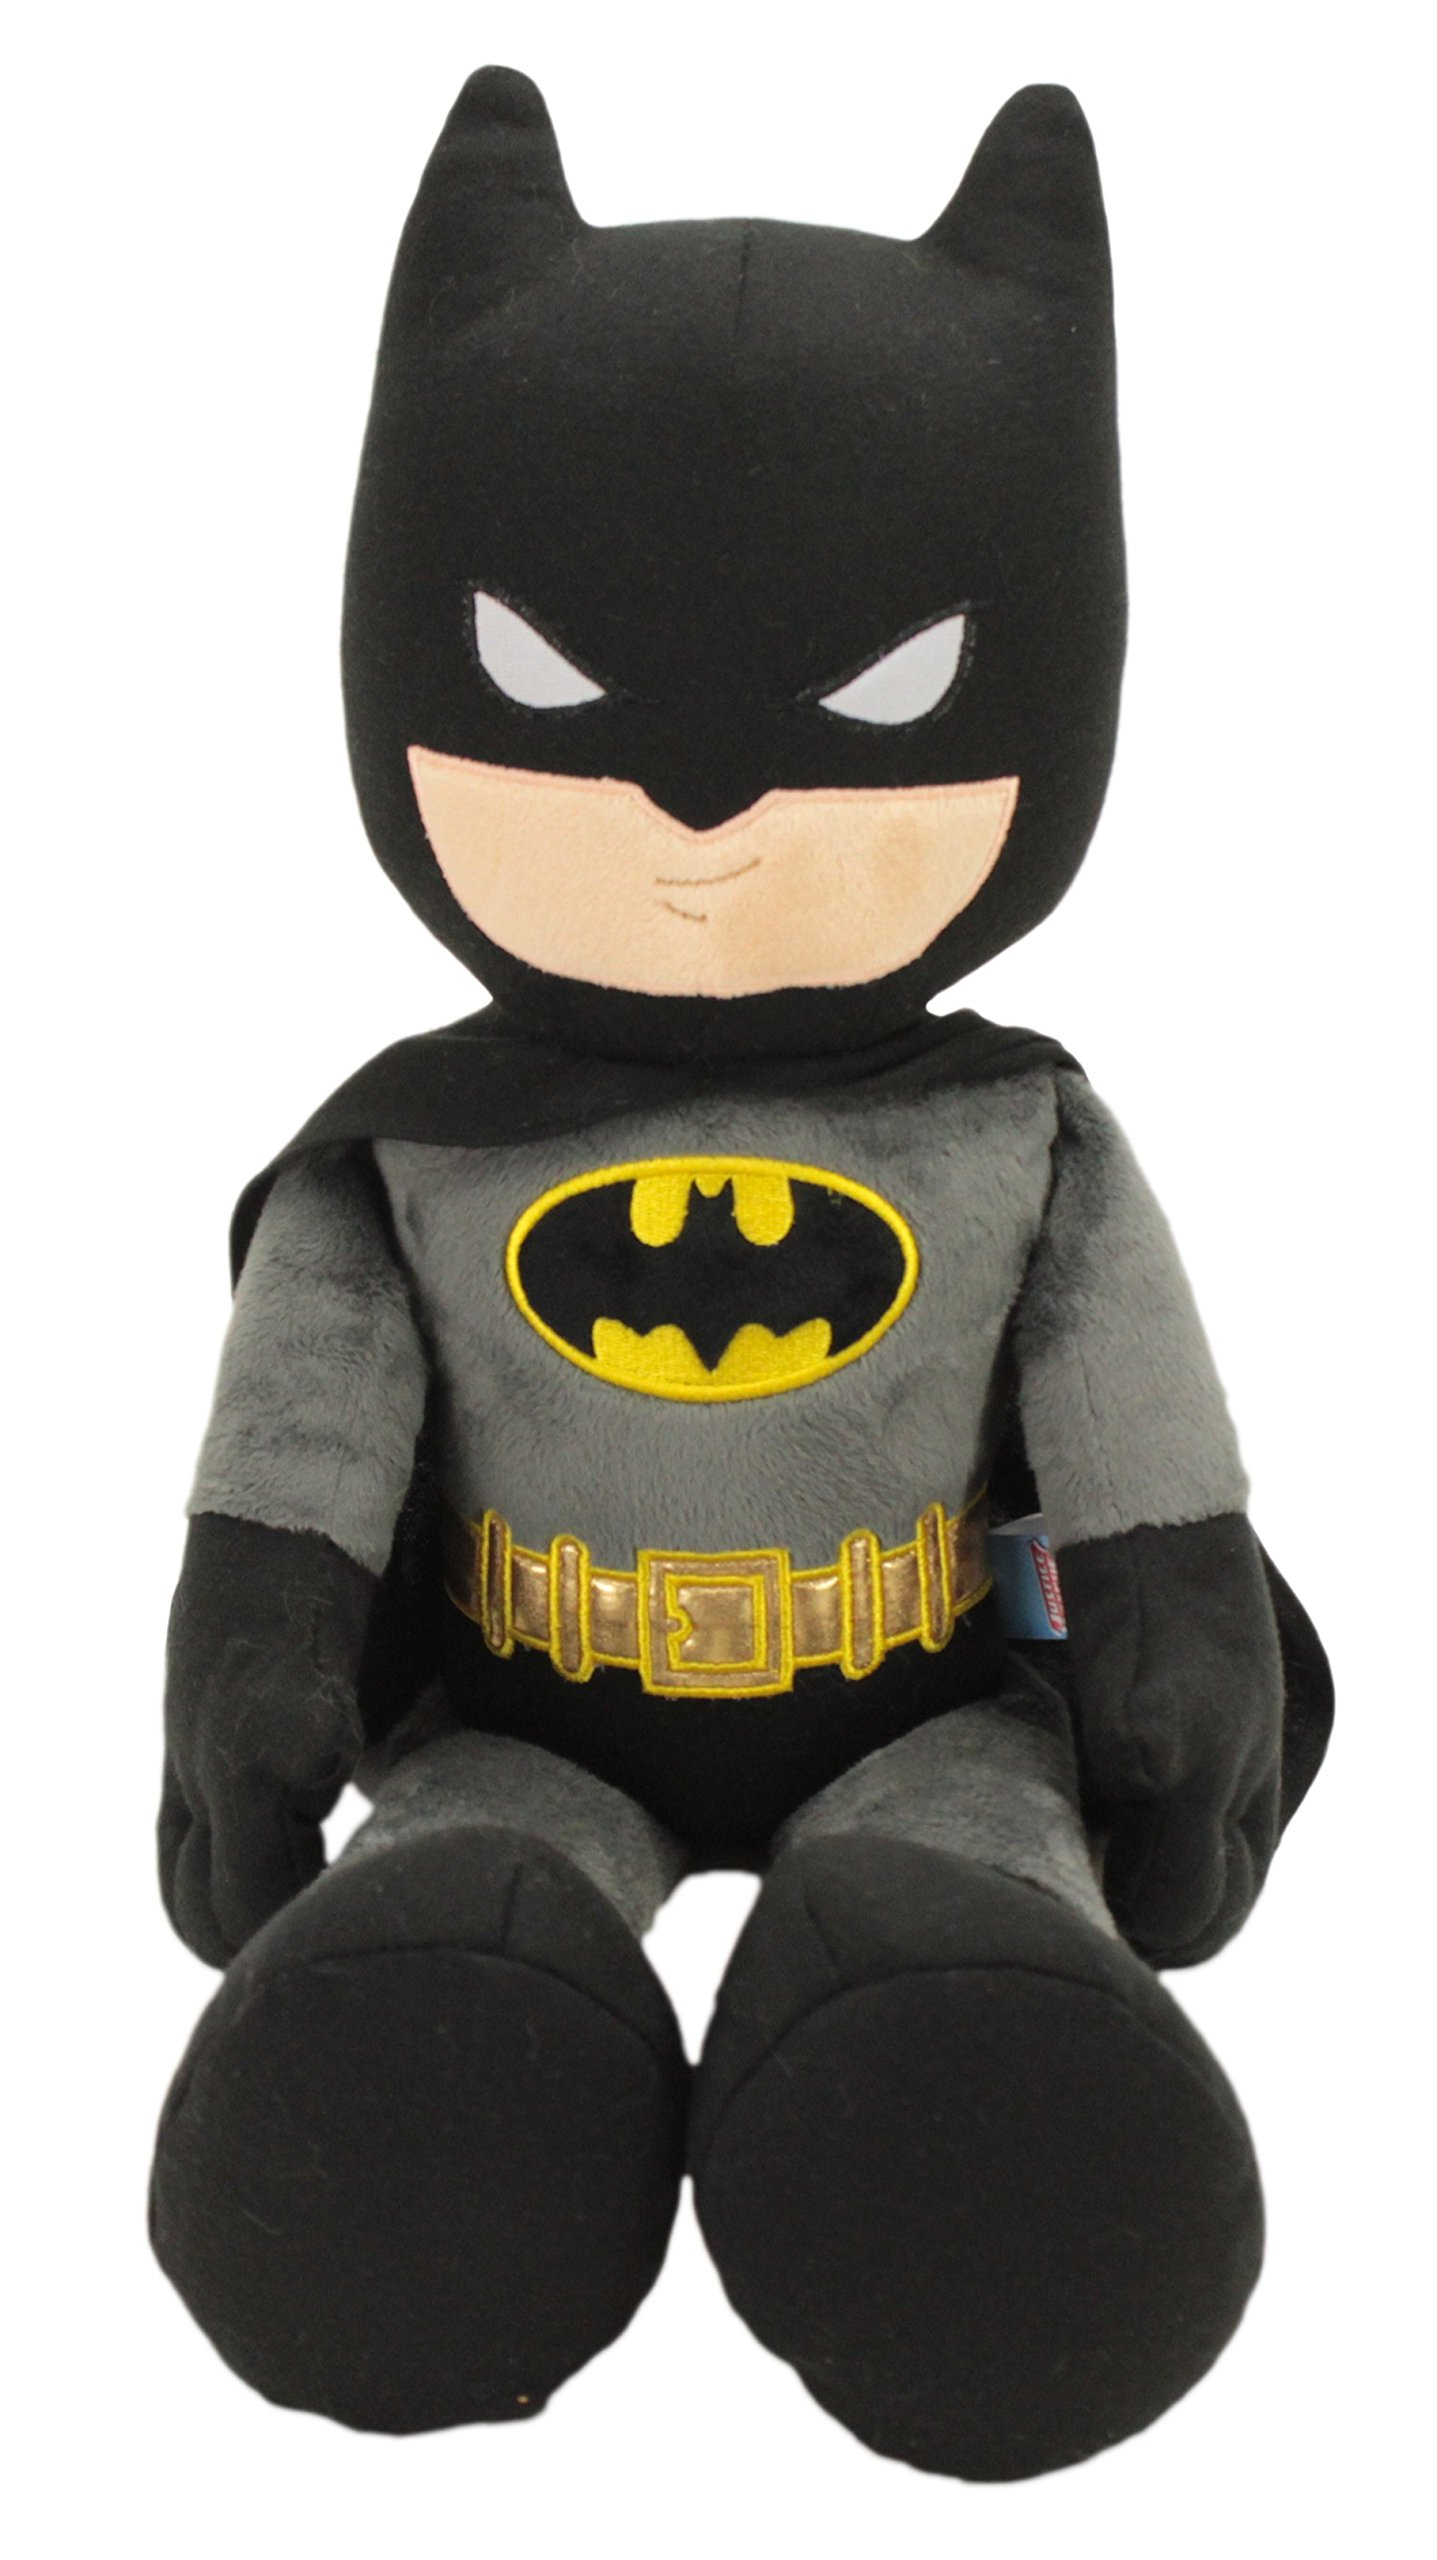 Animal Adventure | DC Comics Justice League | Batman | 21'' Collectible Plush by Animal Adventure